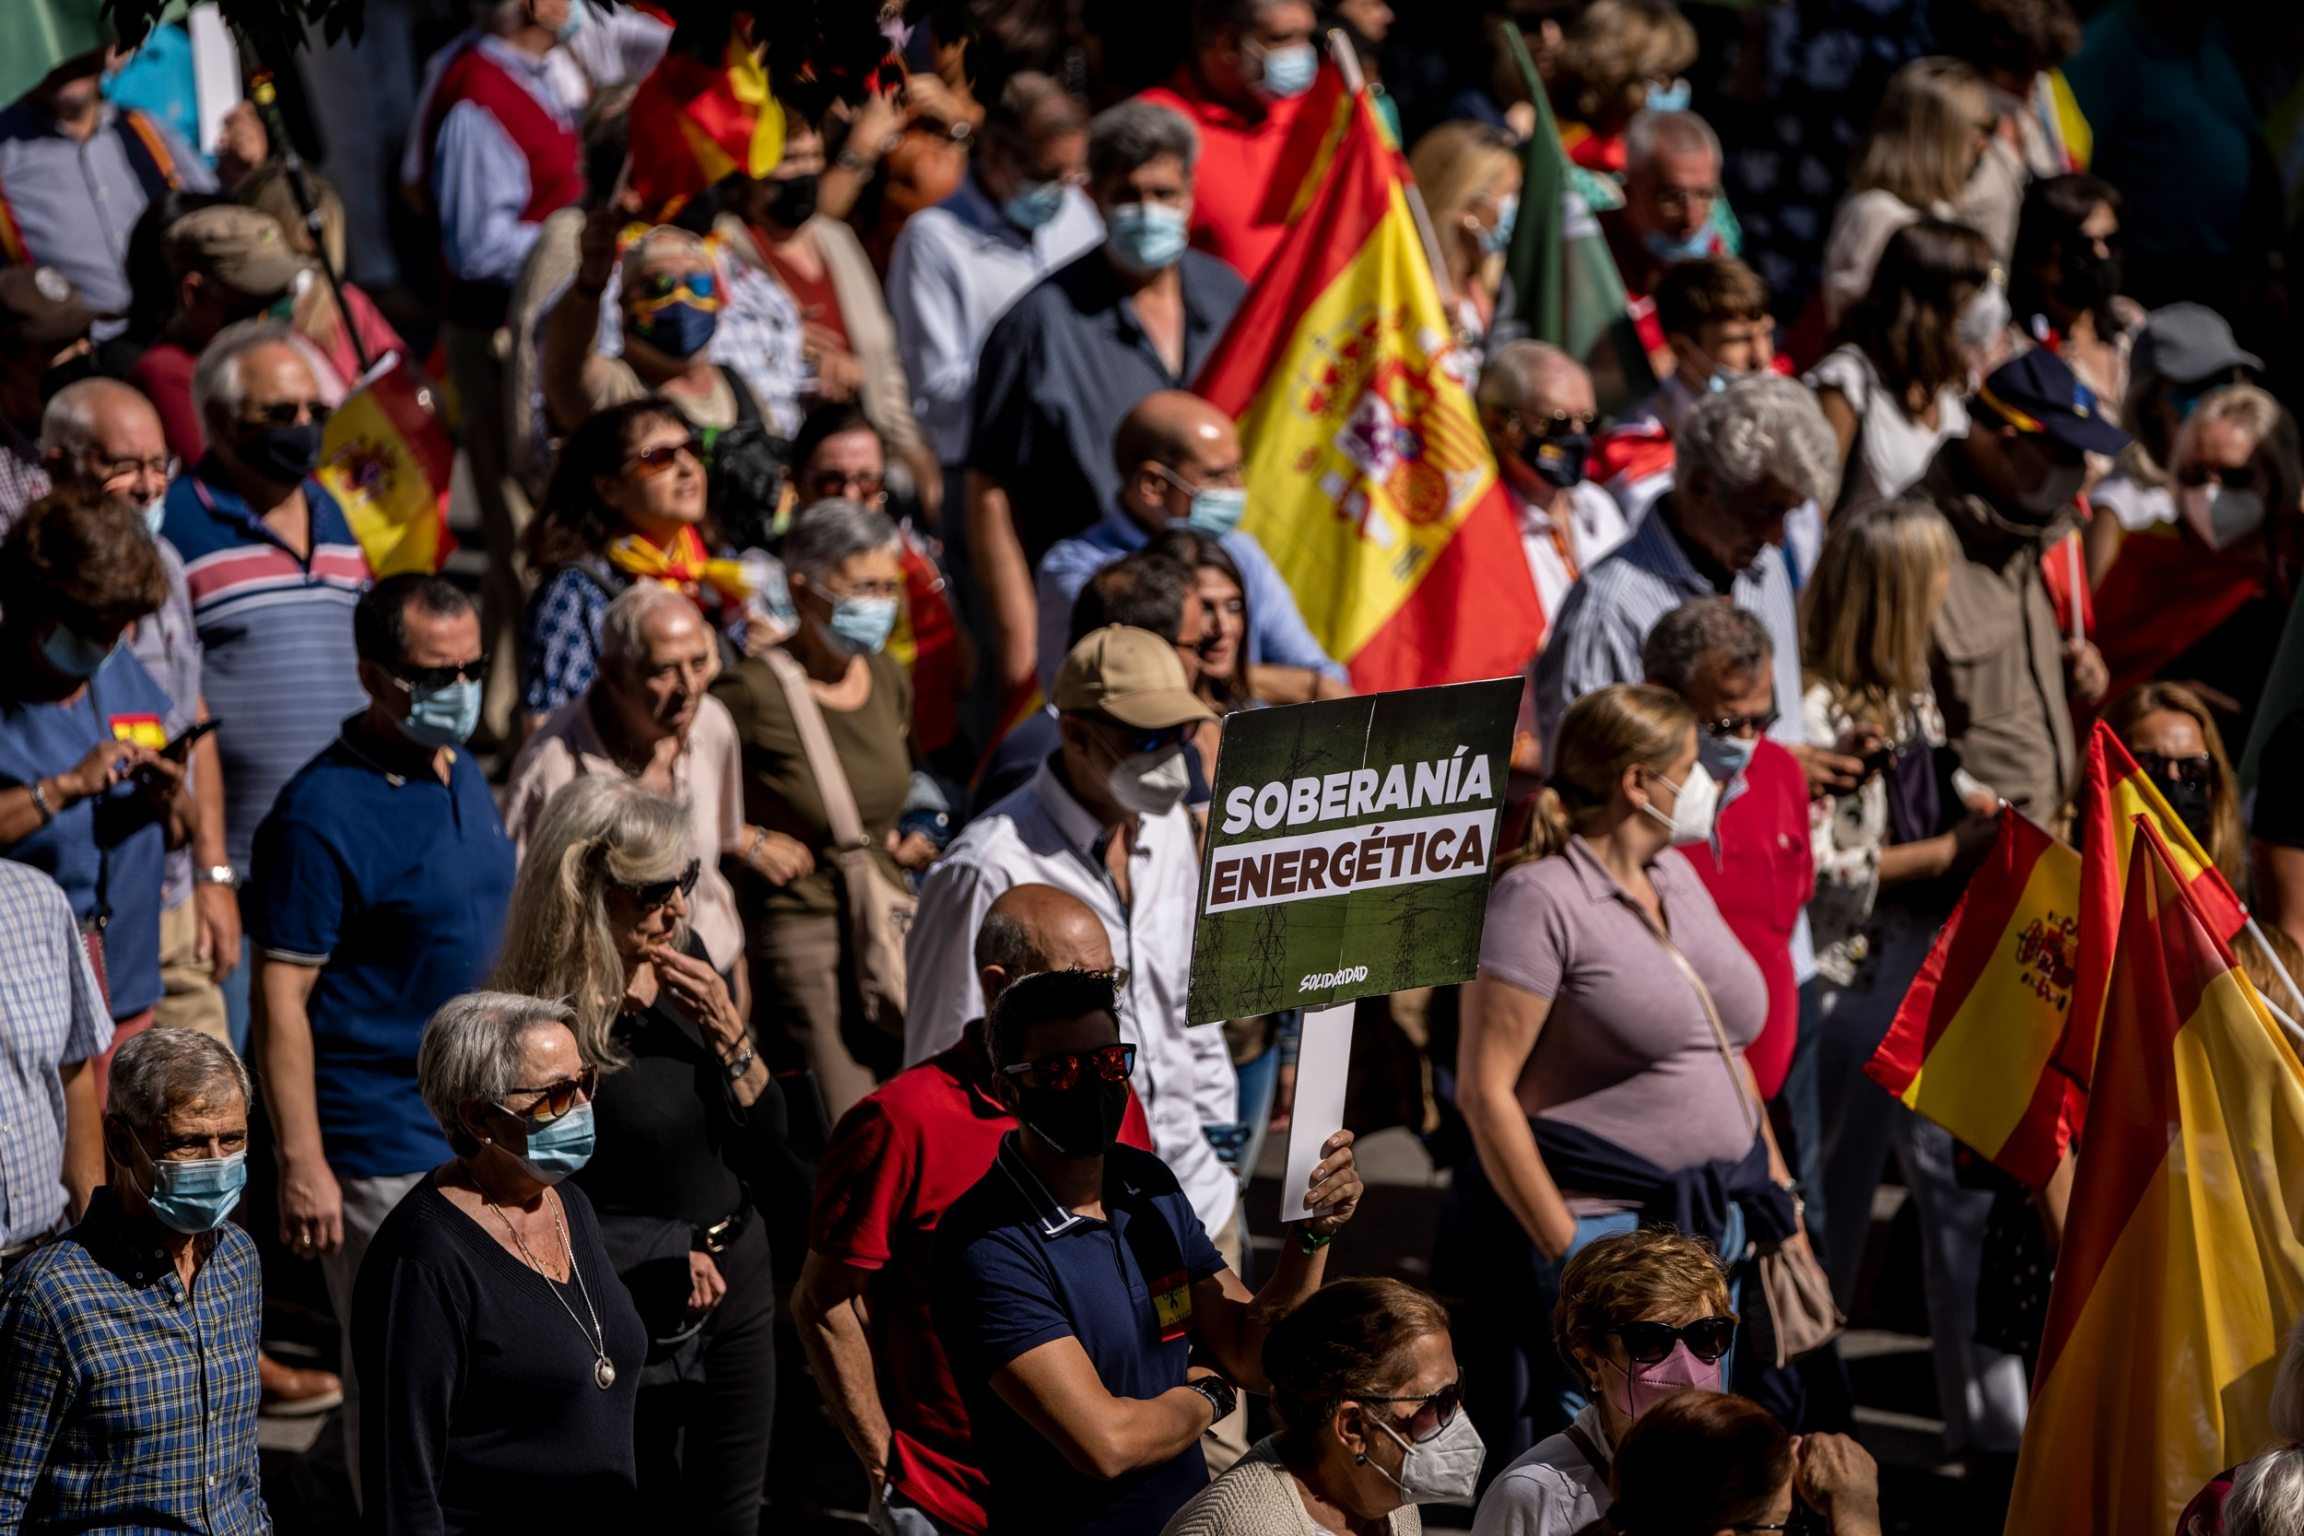 People take part during a protest against the increases in the price of electricity in Madrid, Spain, Sunday, Sept. 19, 2021. Gas and electric prices are spiking in Europe.